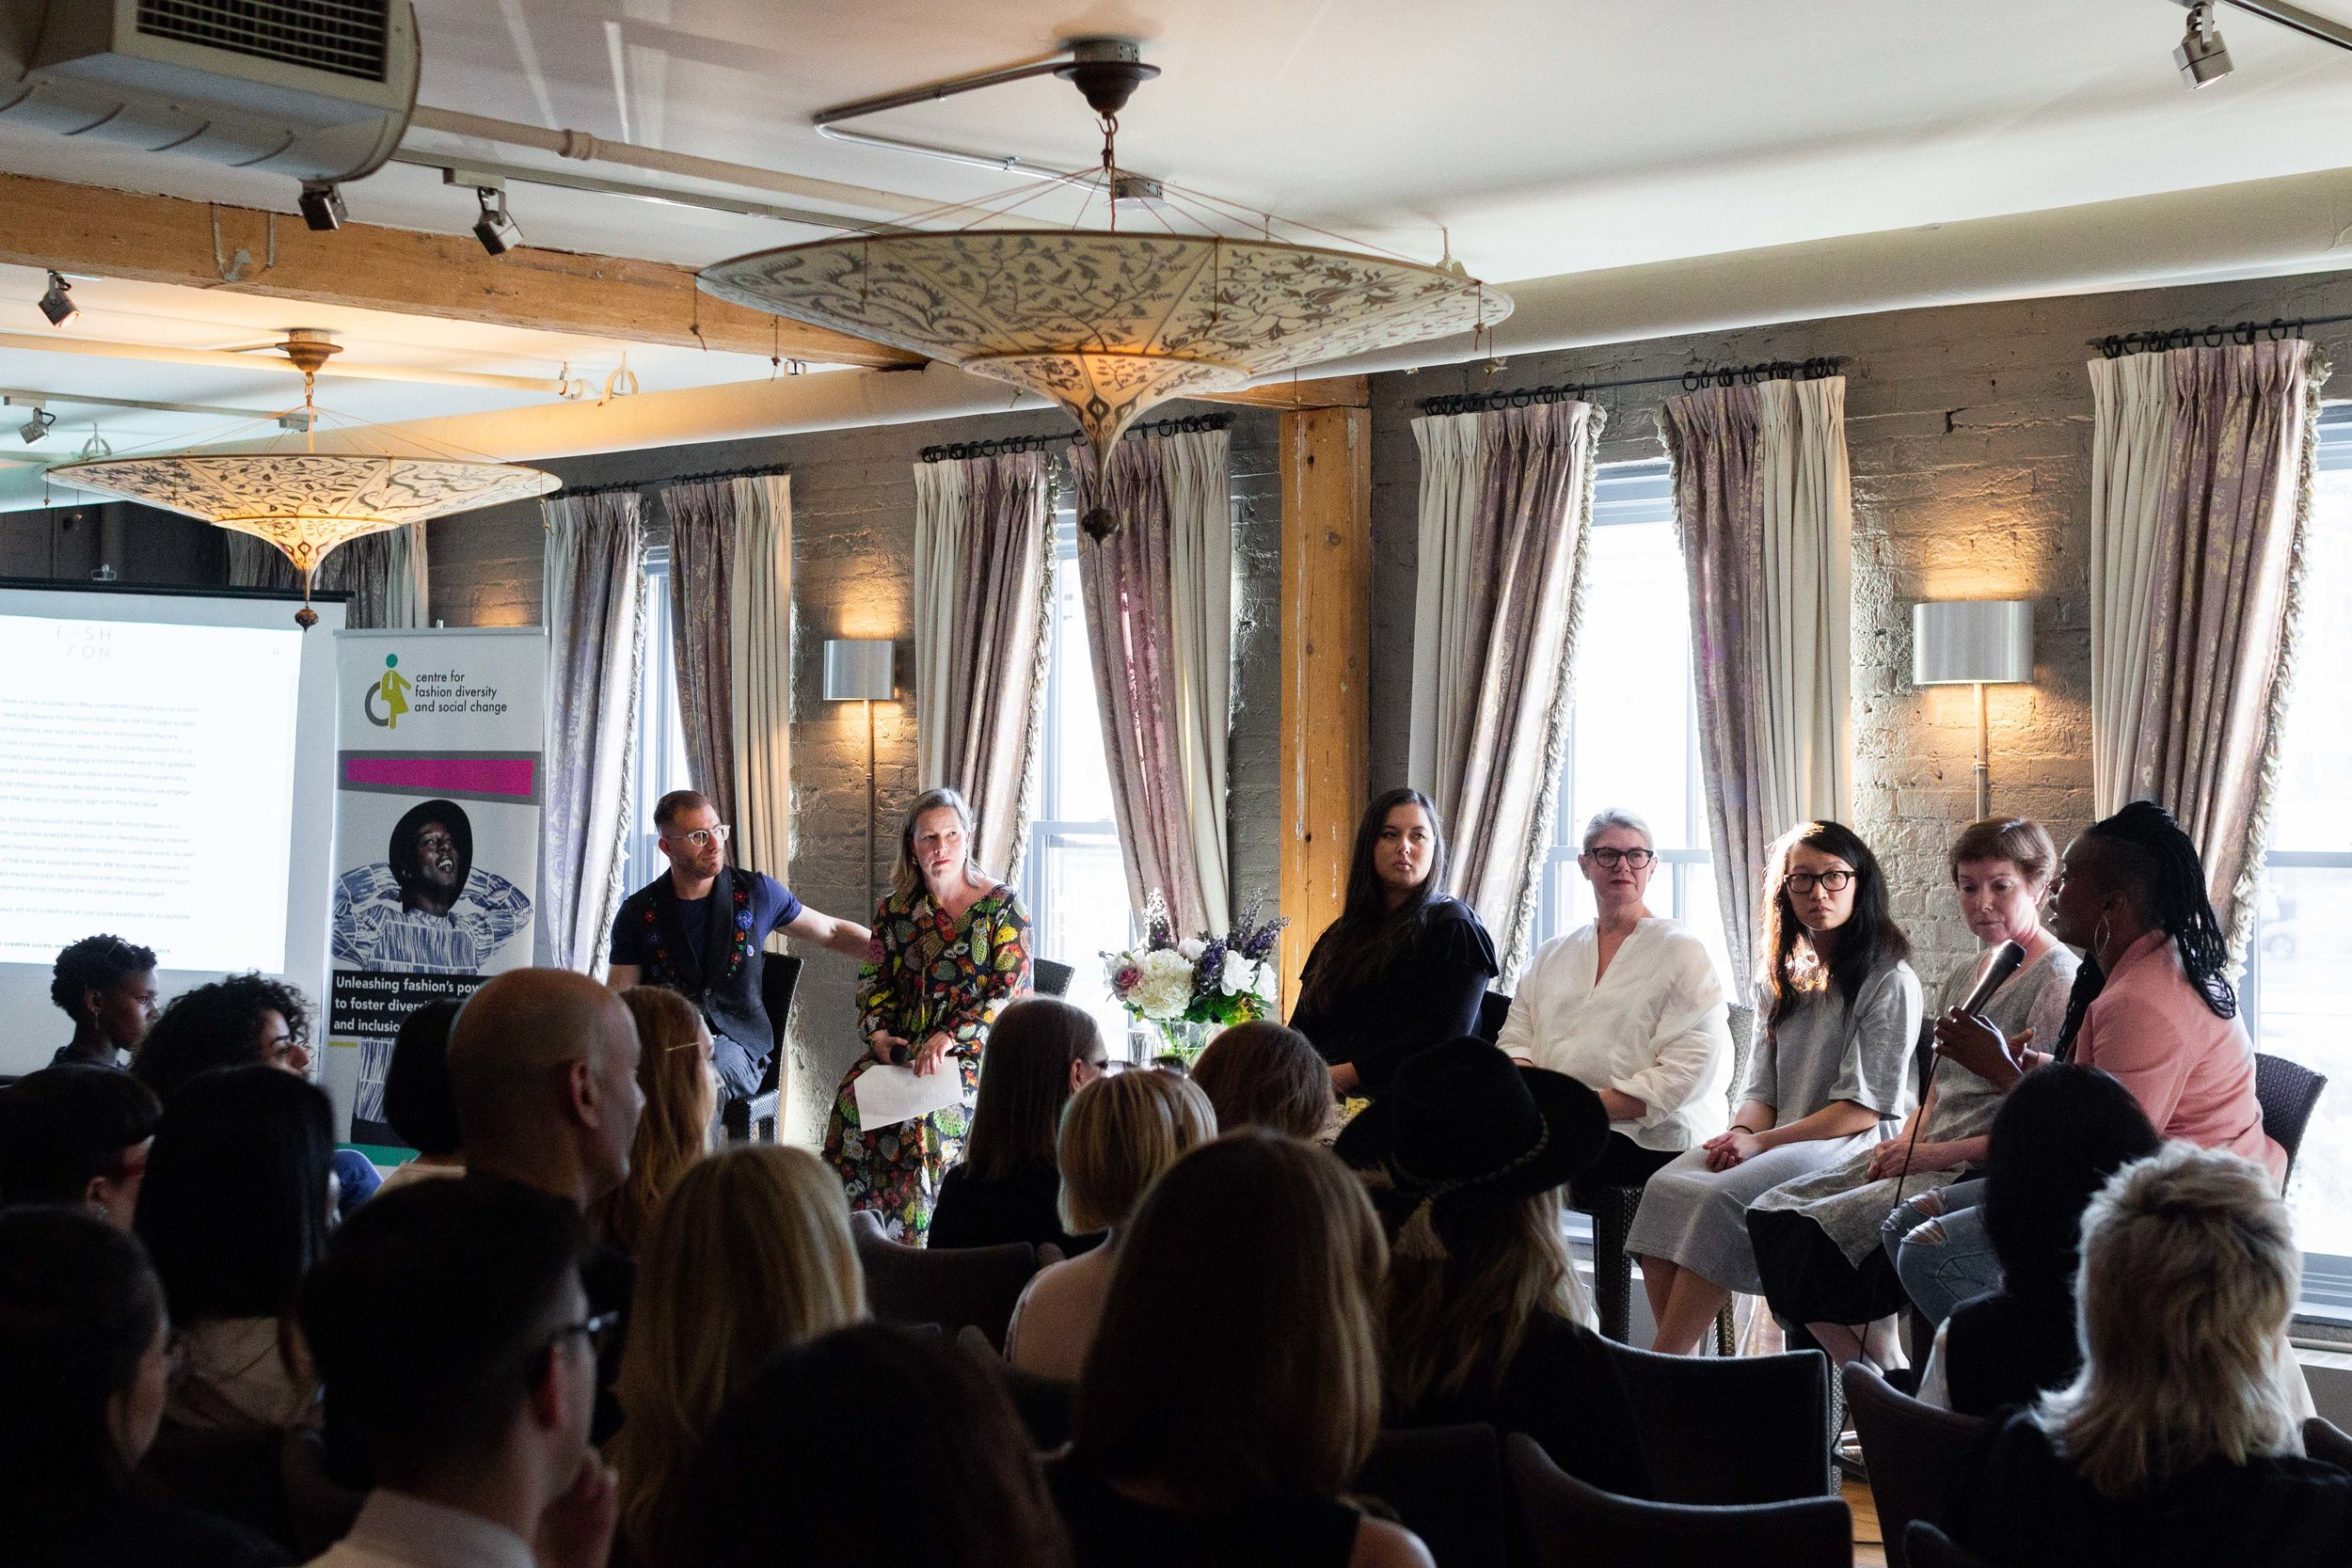 Fashion Studies  Issue 1 launch event, hosted by the Centre for Fashion Diversity & Social Change at Verity, May 2018. Featuring event moderators and panelists (left to right): Dr. Ben Barry, Dr. Alison Matthews David, Lesley Hampton, Elizabeth Semmelhack, Dr. Charlene Lau, Dr. Eliza Chandler, and Keisha McPherson. Photo: Alexander La.